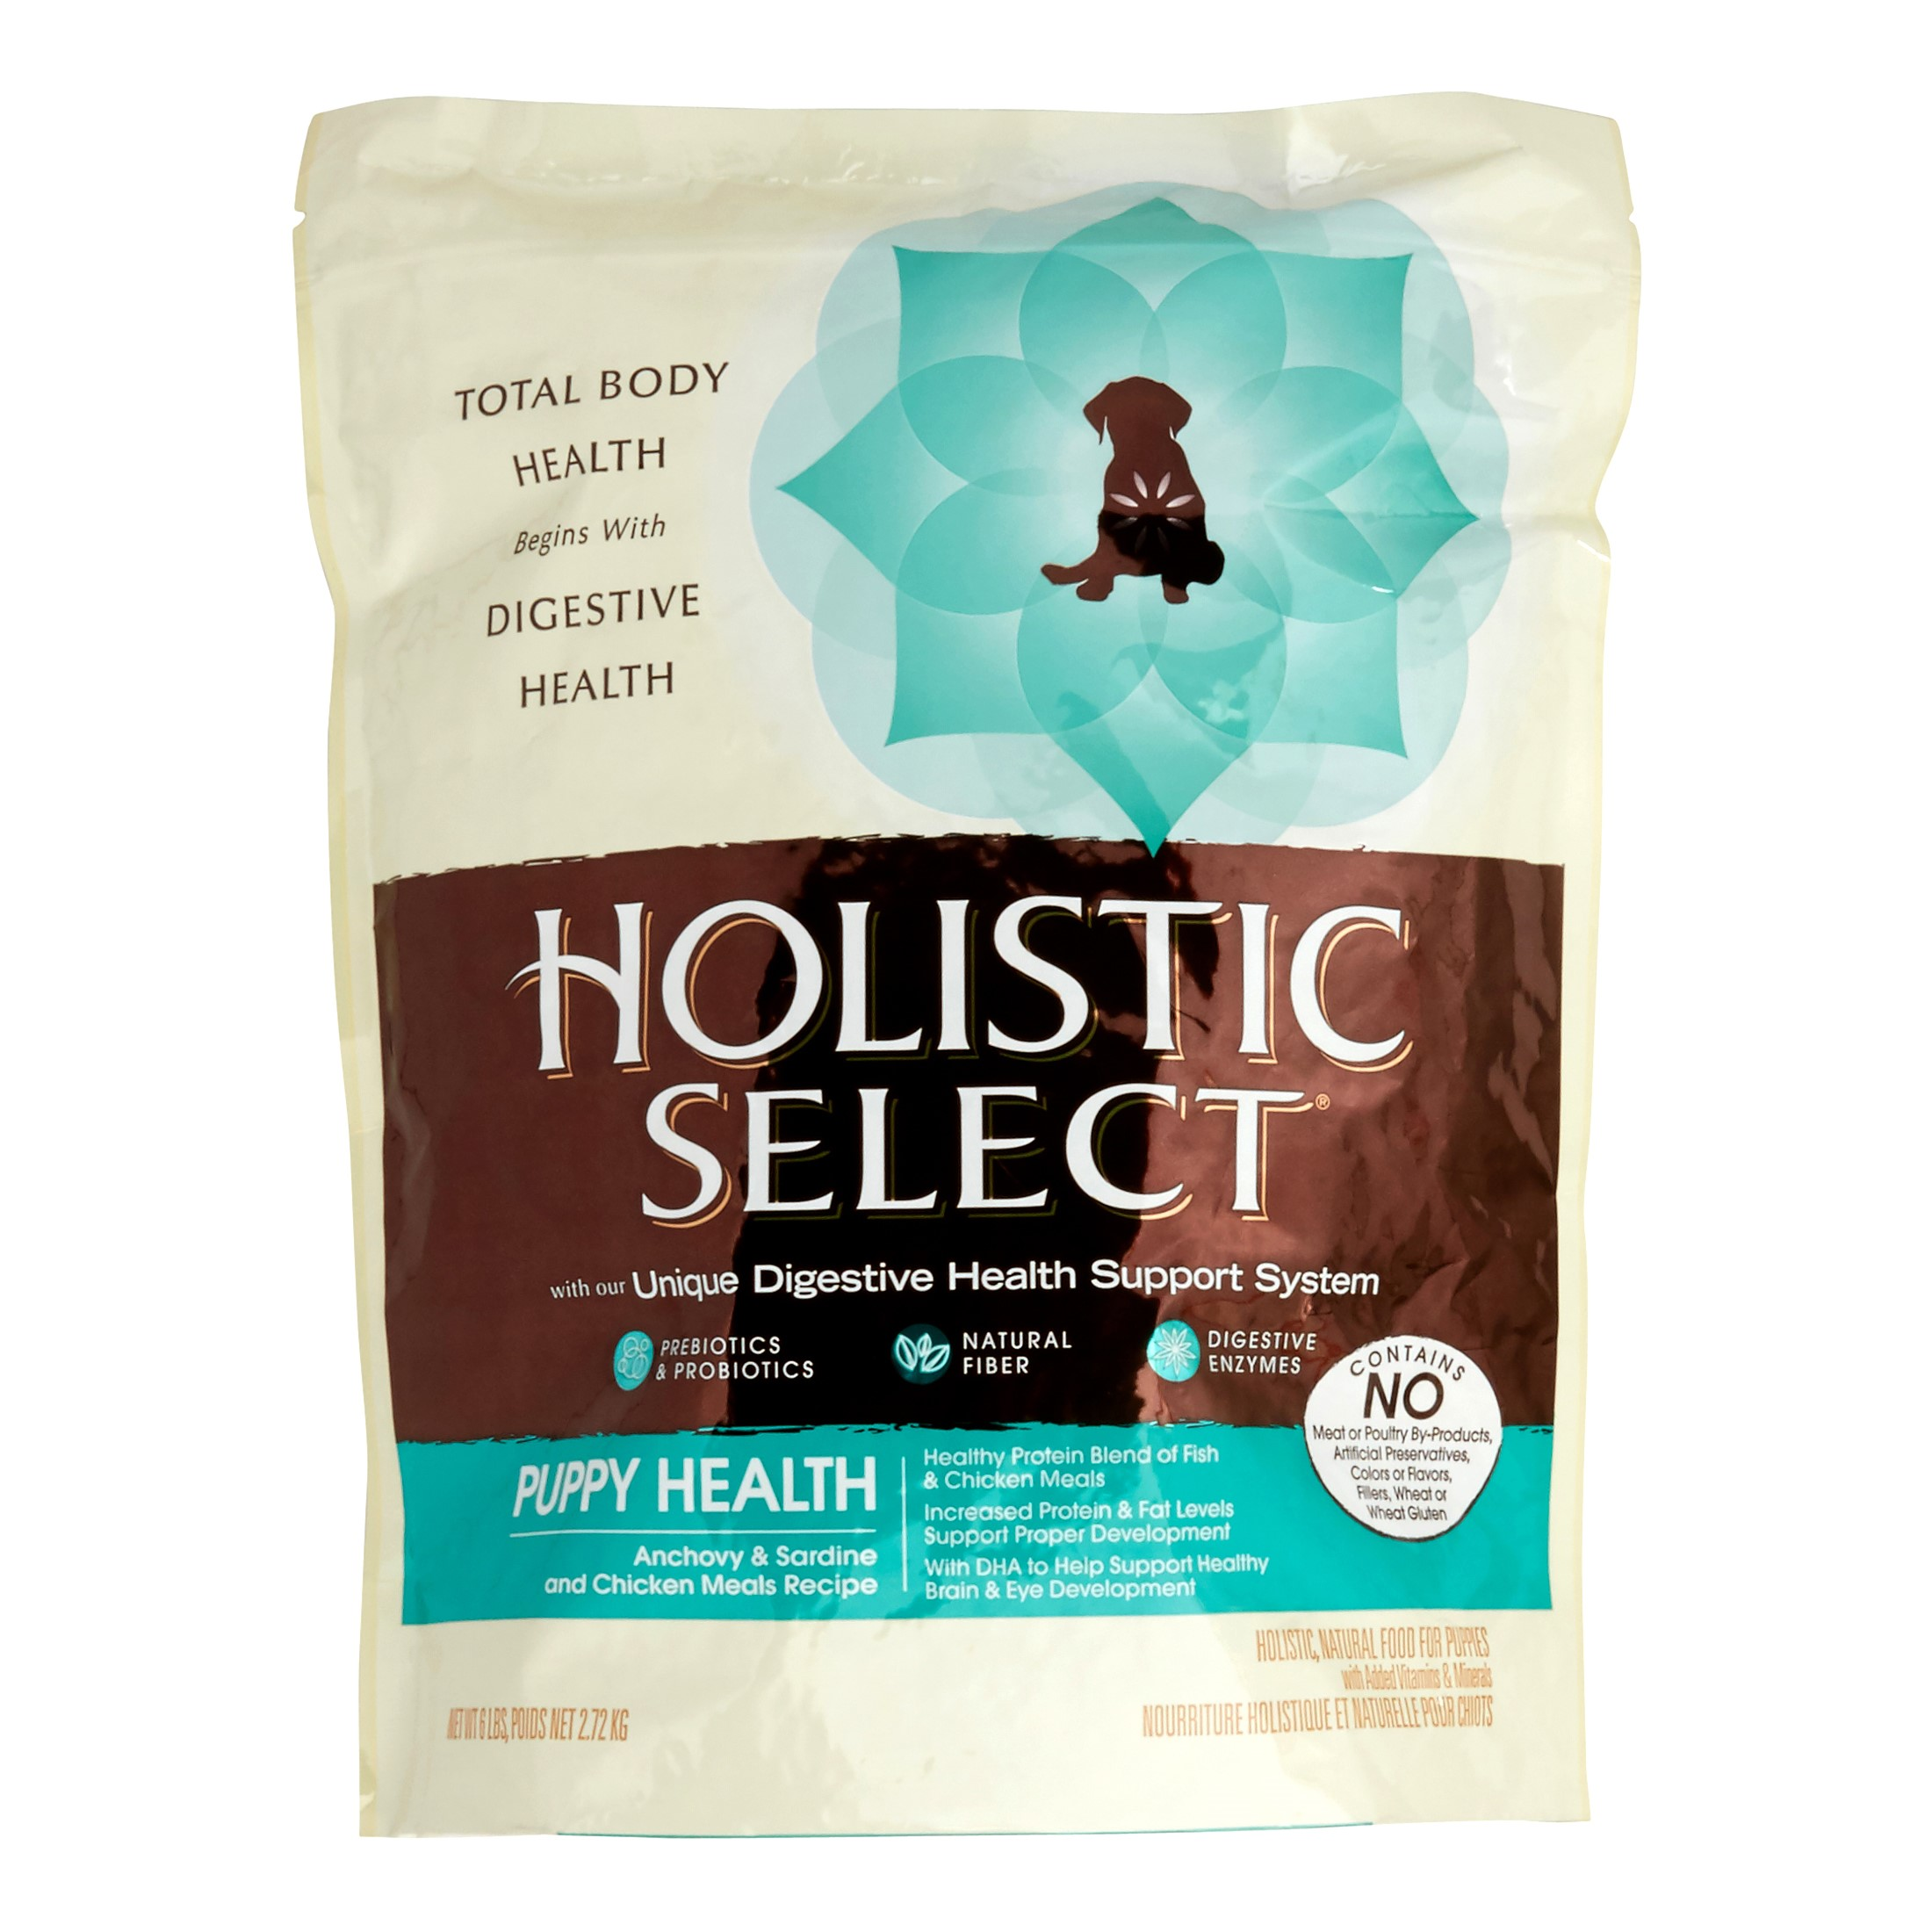 Holistic Select Puppy Health Anchovy, Sardine & Chicken Meal Dry Dog Food, 6 Lb